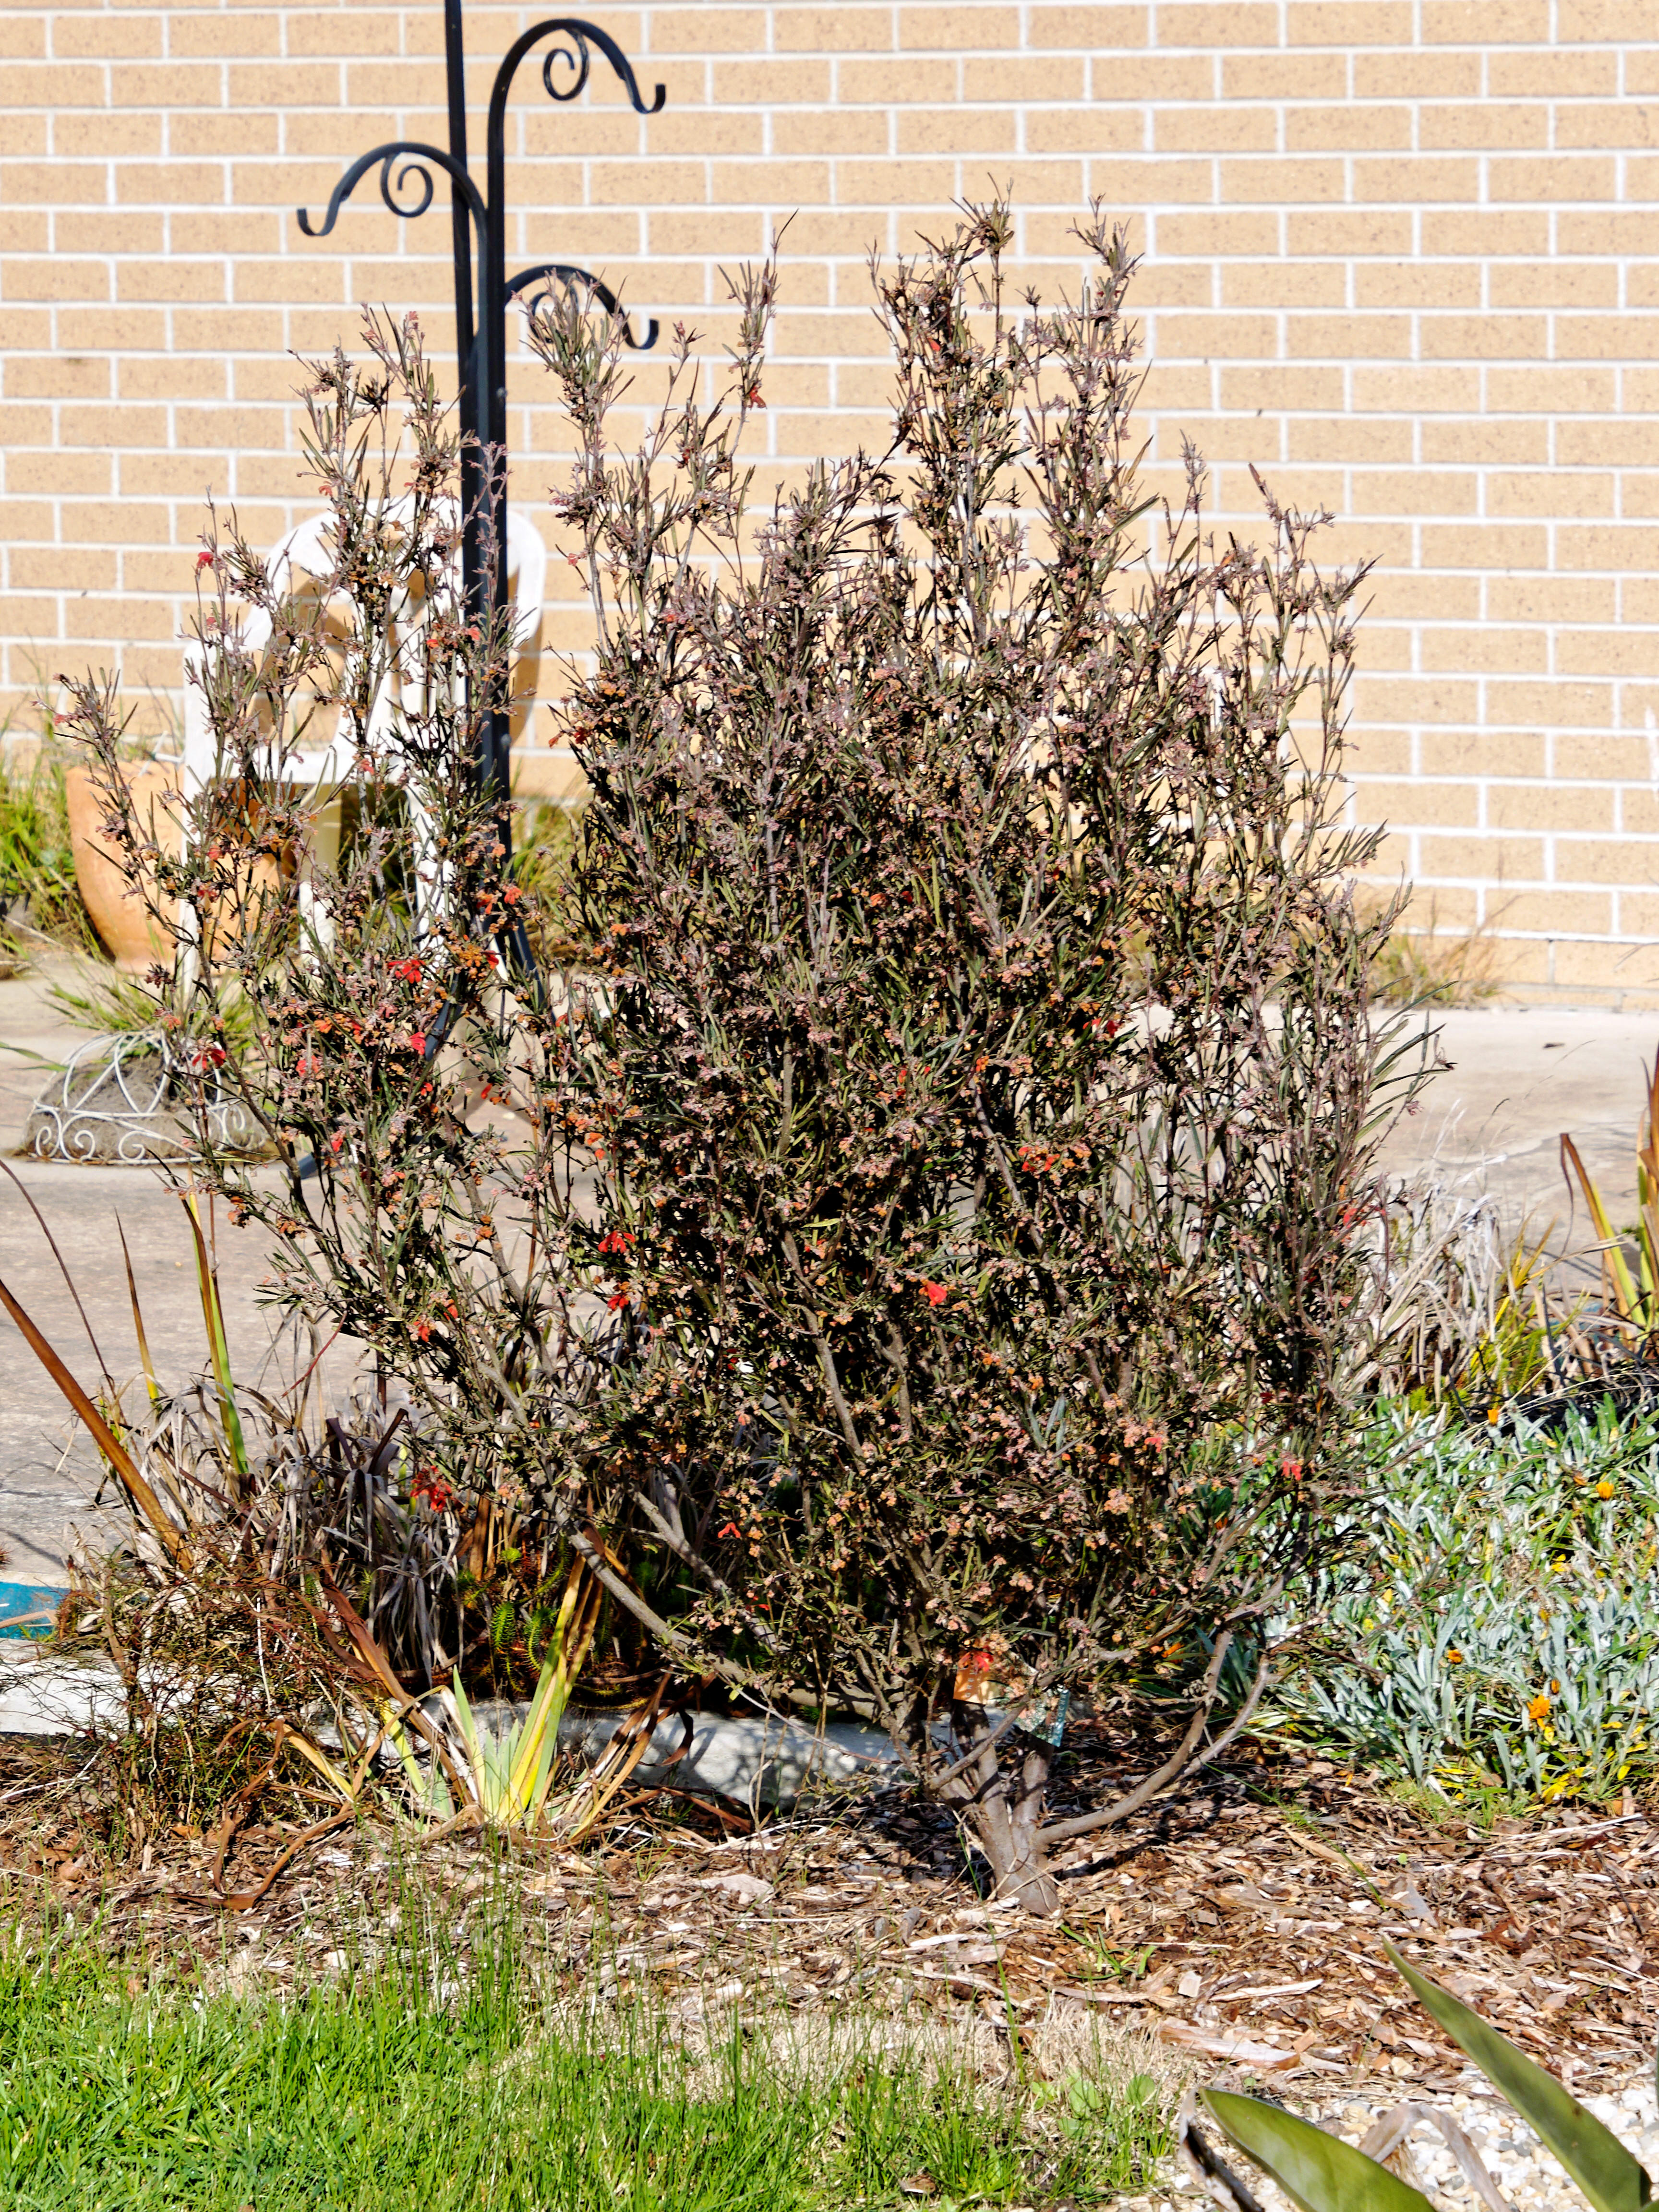 This should be Grevillea.jpeg.  Is it missing?